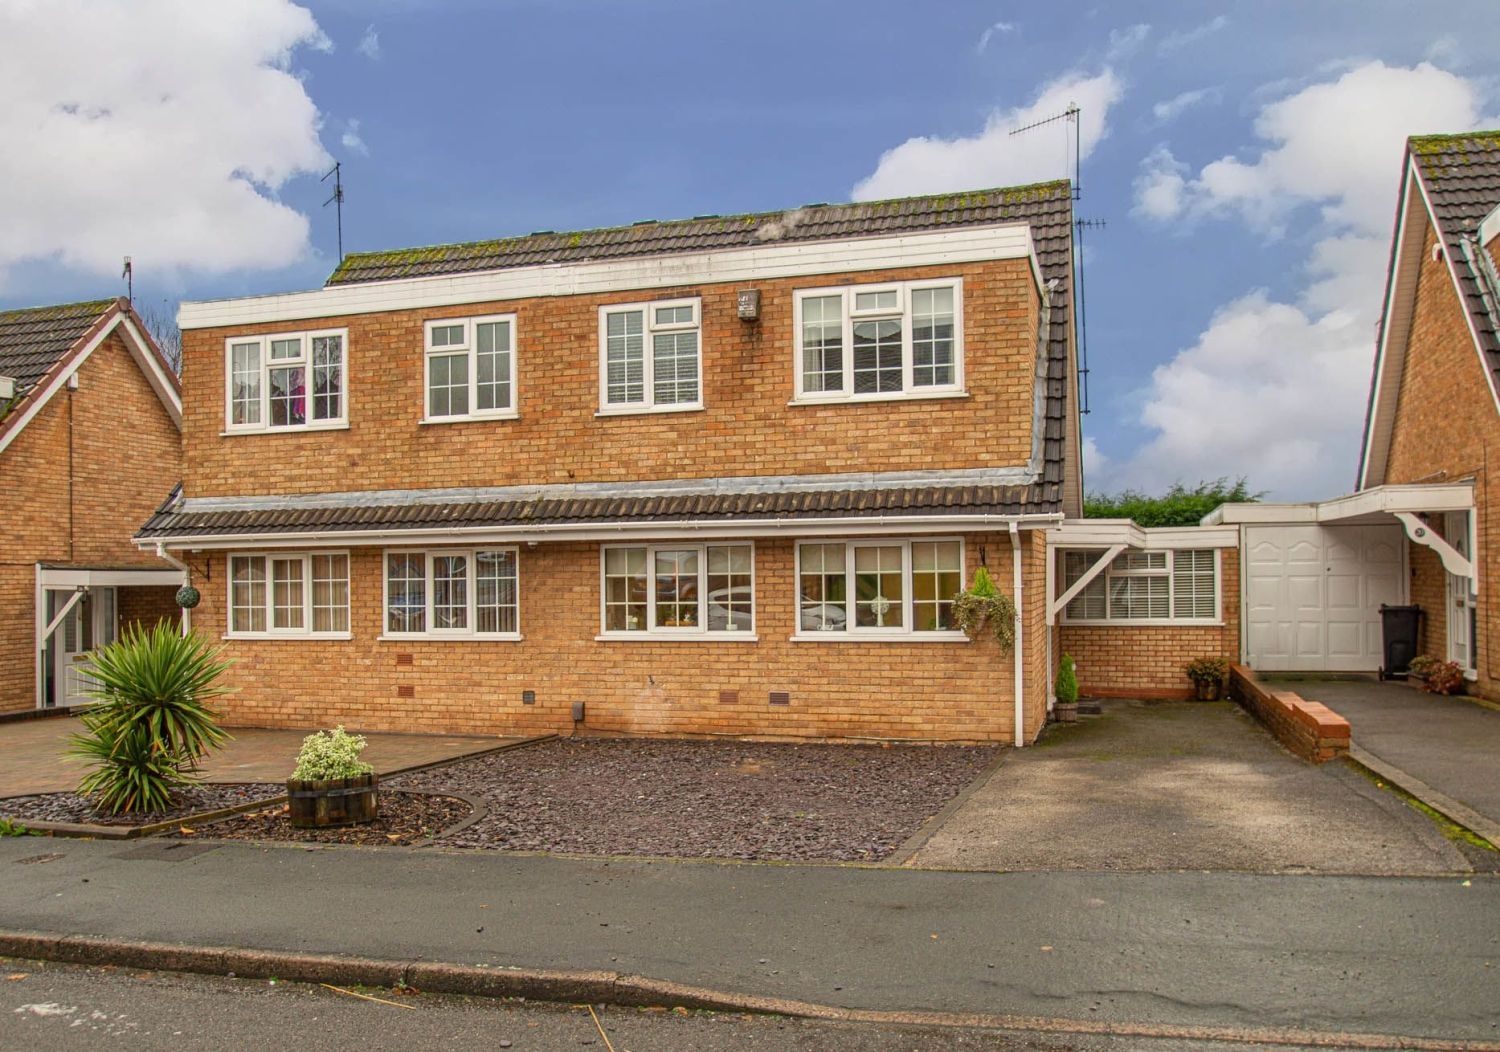 2 bed semi-detached for sale in Woburn Drive, Halesowen 1